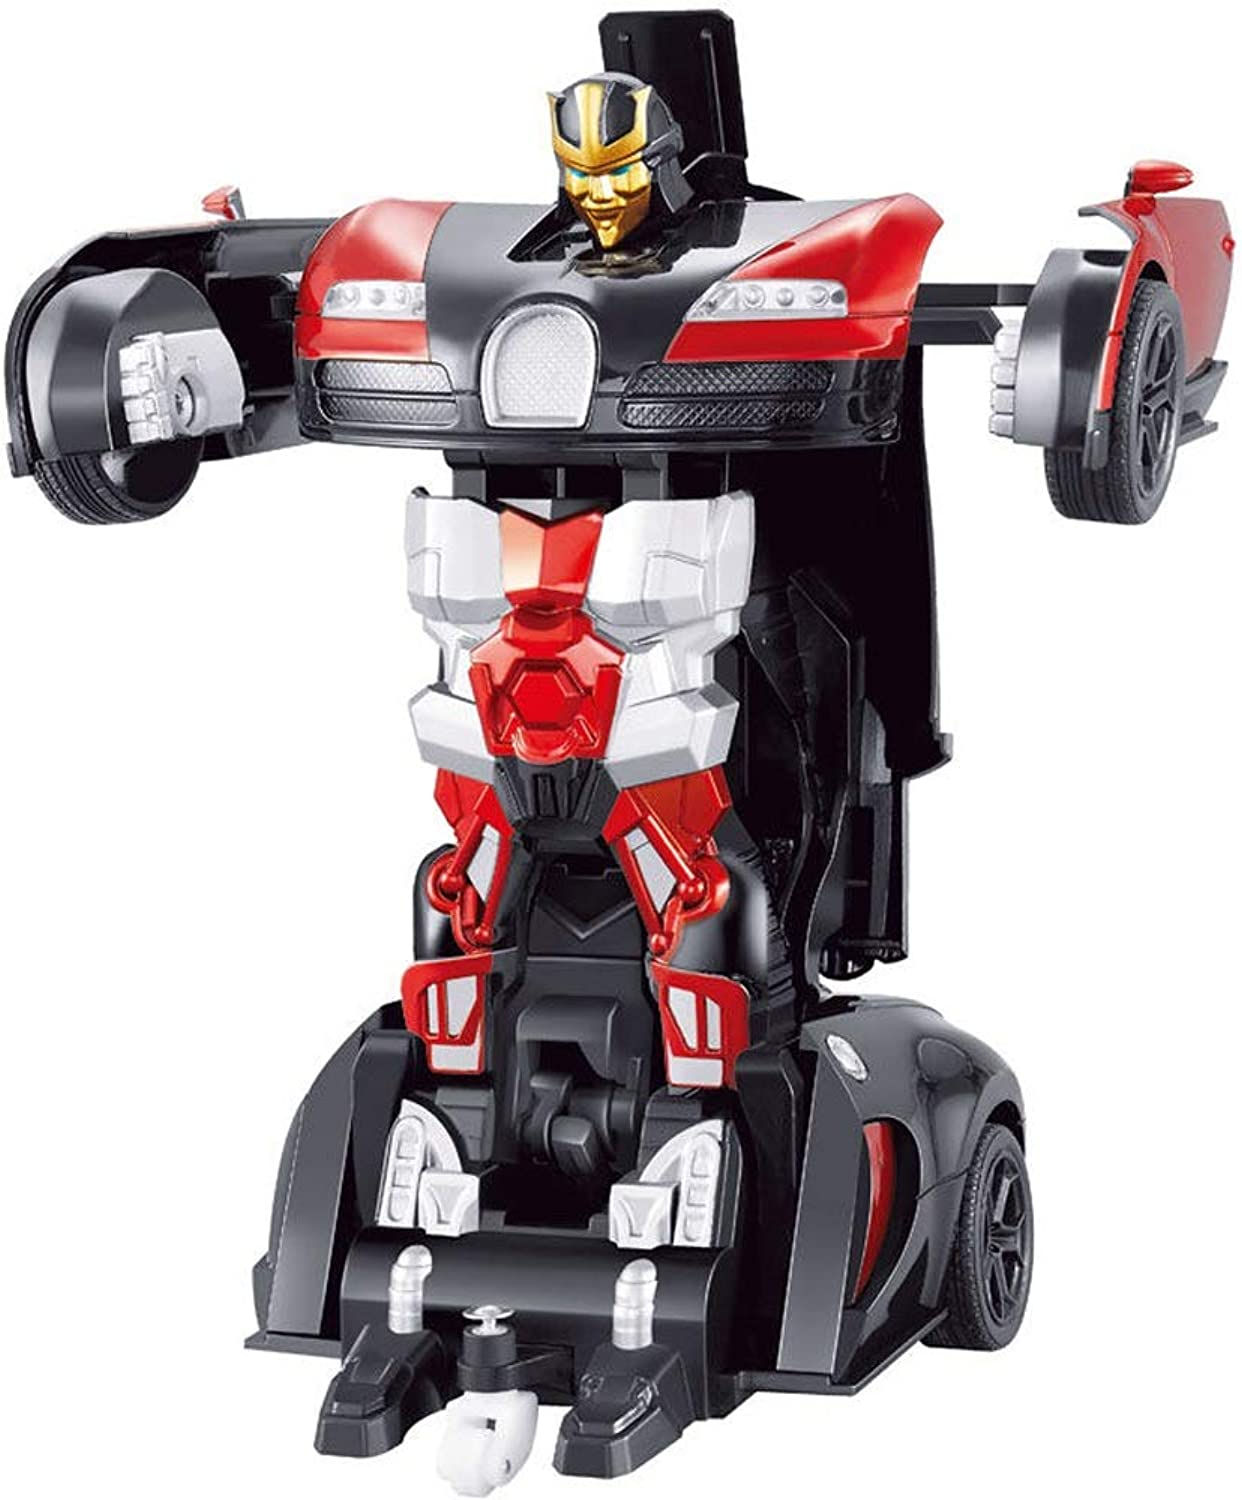 PETRLOY Gesture Transformation Autobots Car Toy for Kids 1 18 Model RC Car Boys Girls Light Up Mini RC Car Rechargeable 700mAh Music and Lighting Features One Button Remote Action Figure